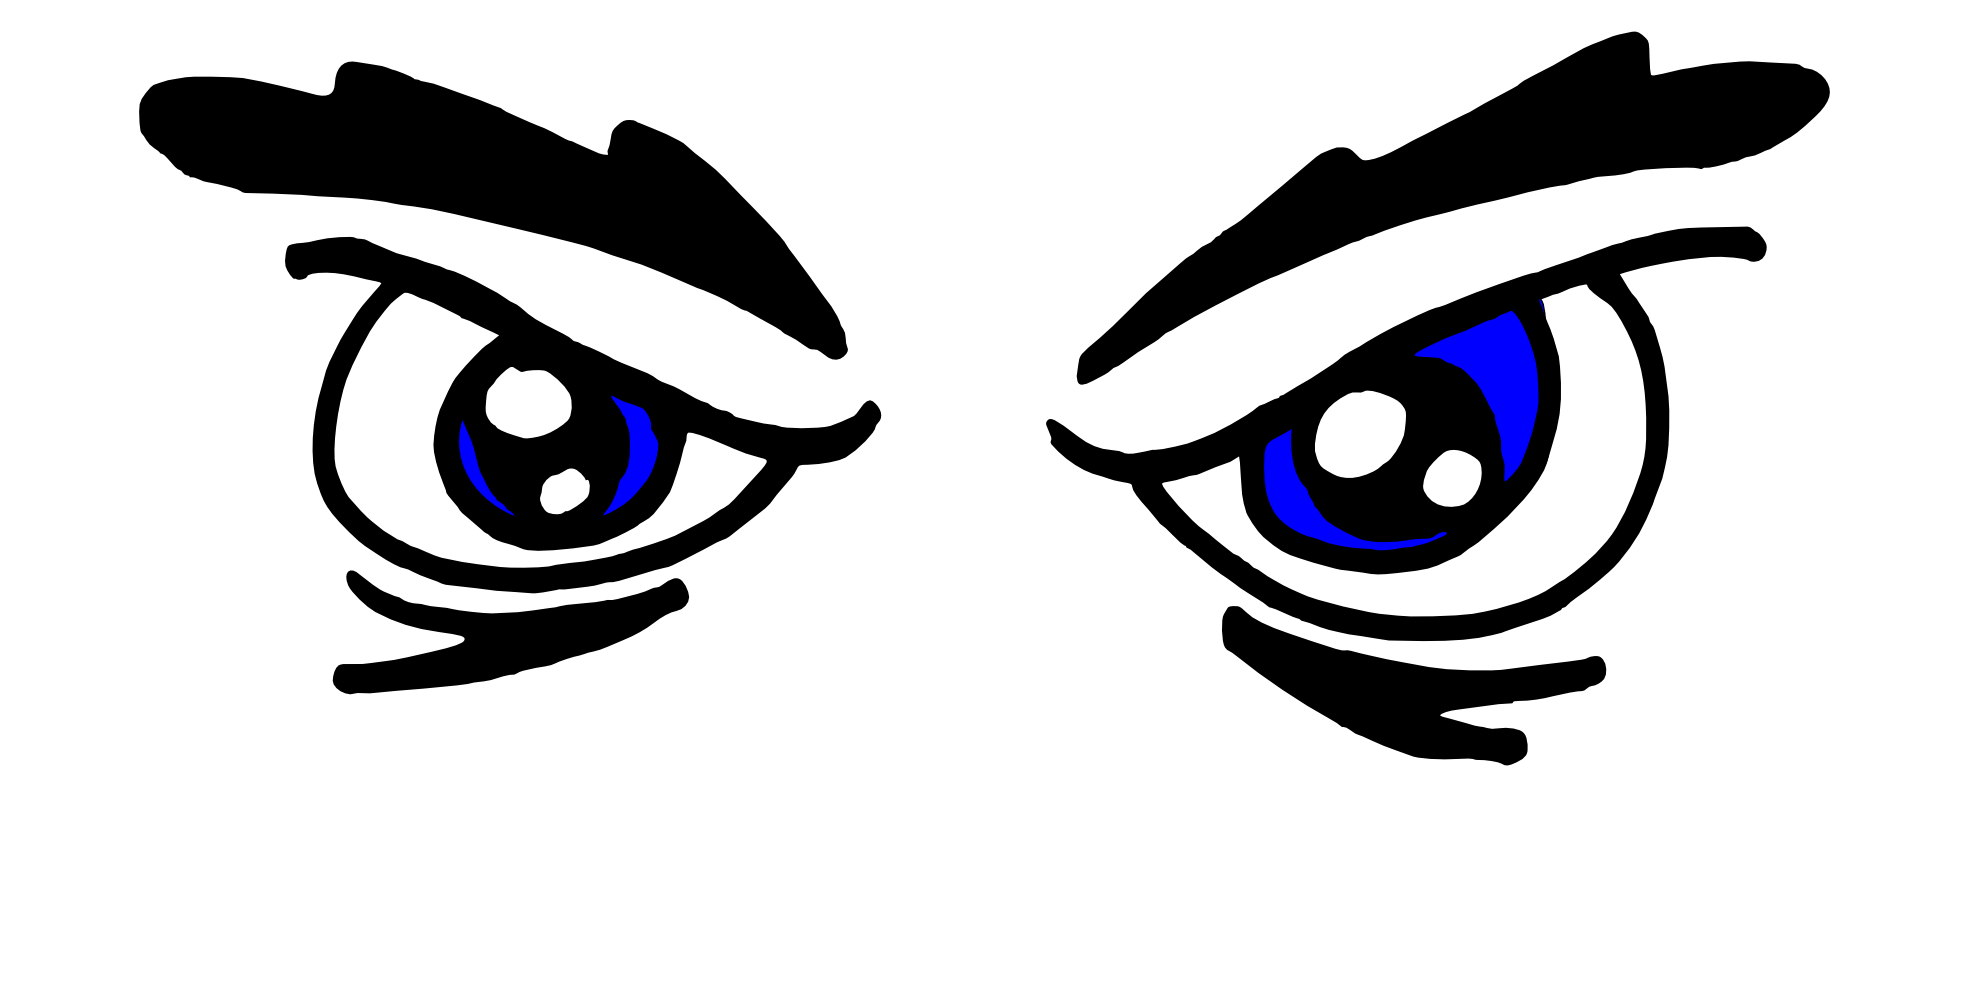 Eyes black and white free black and white eye clipart 1 page of.